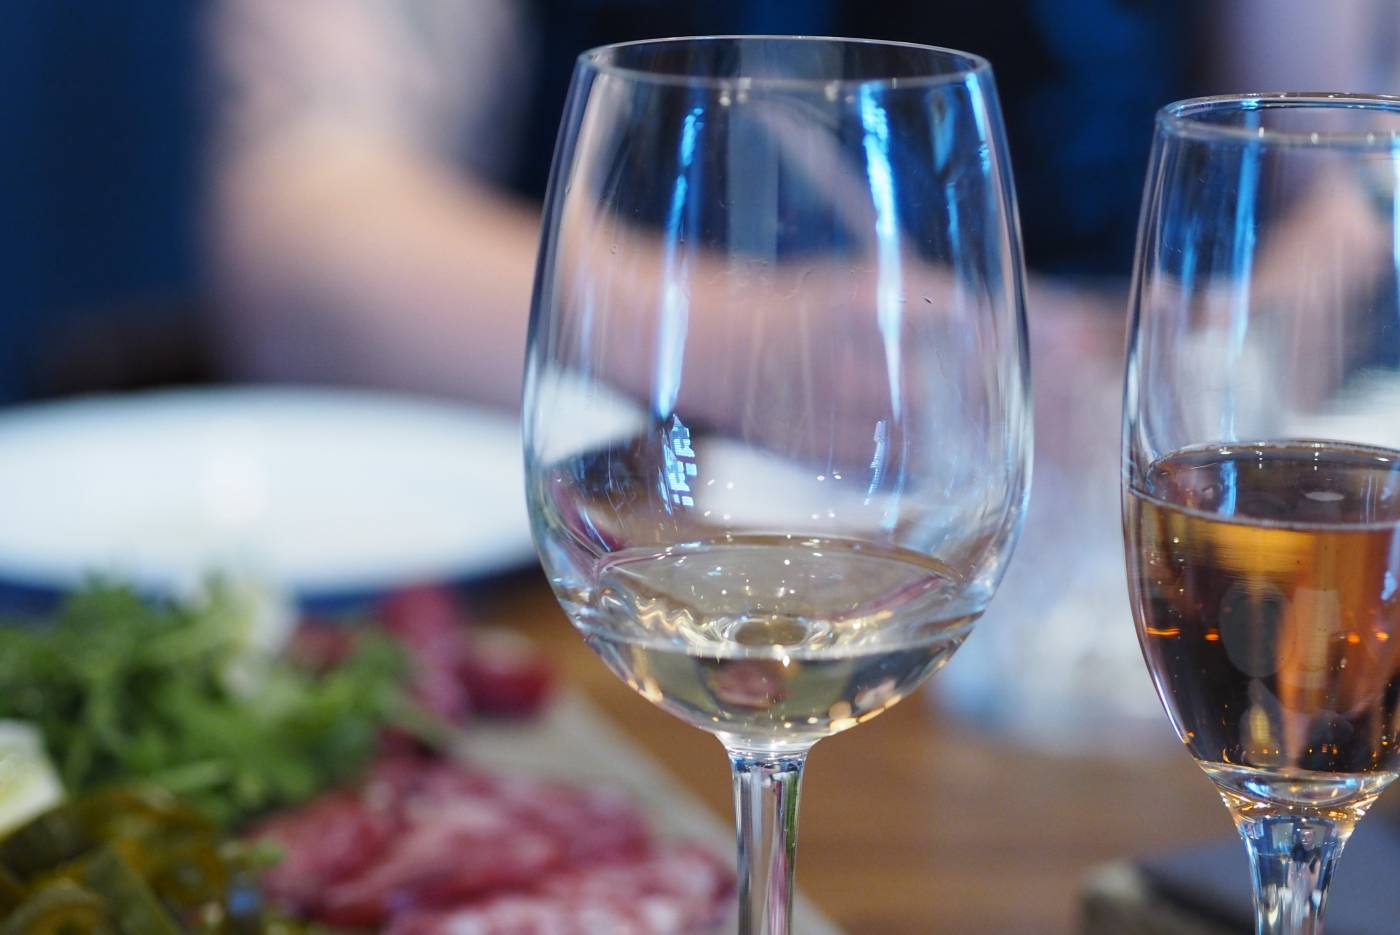 Swirl, Sniff, Slurp and Spit: Wine Tasting at The Plough